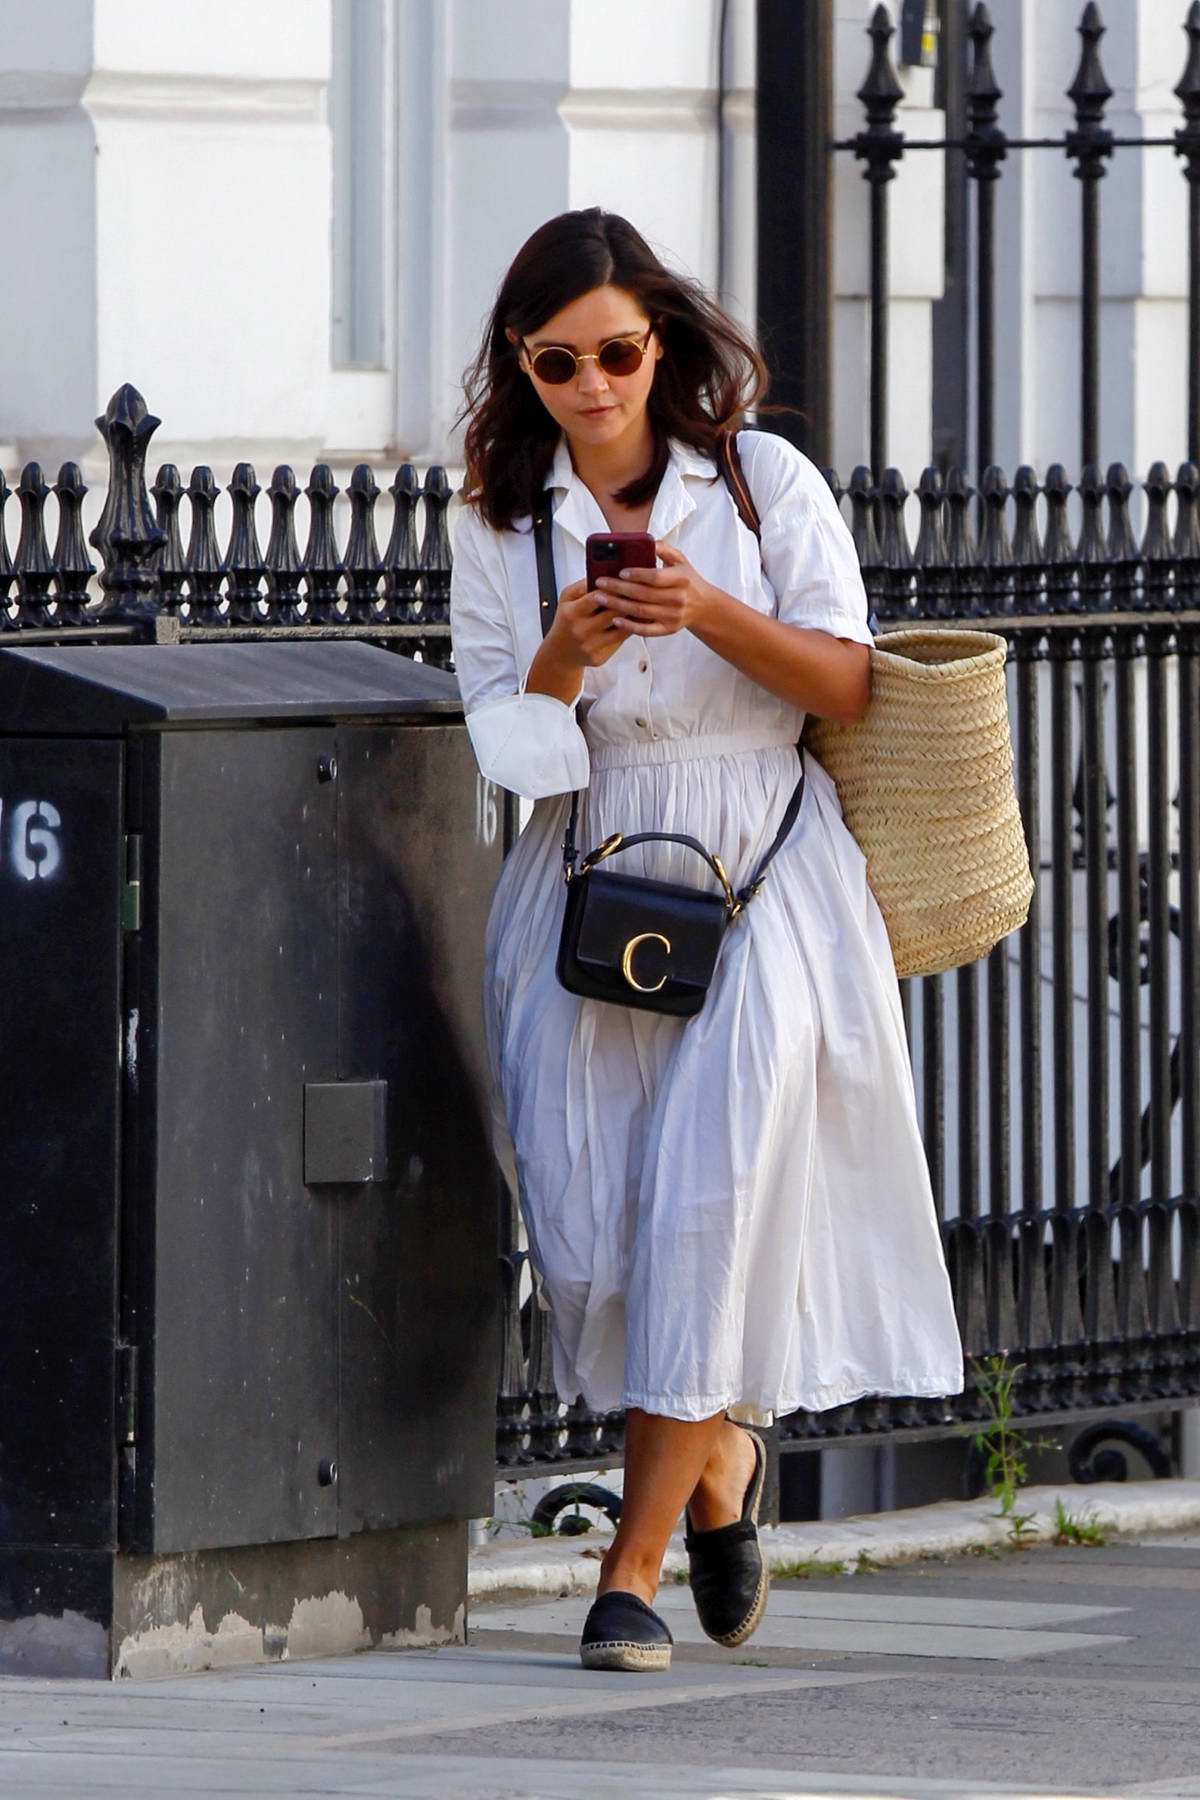 Jenna Coleman looked busy on her phone while out wearing a white dress in Central London, UK